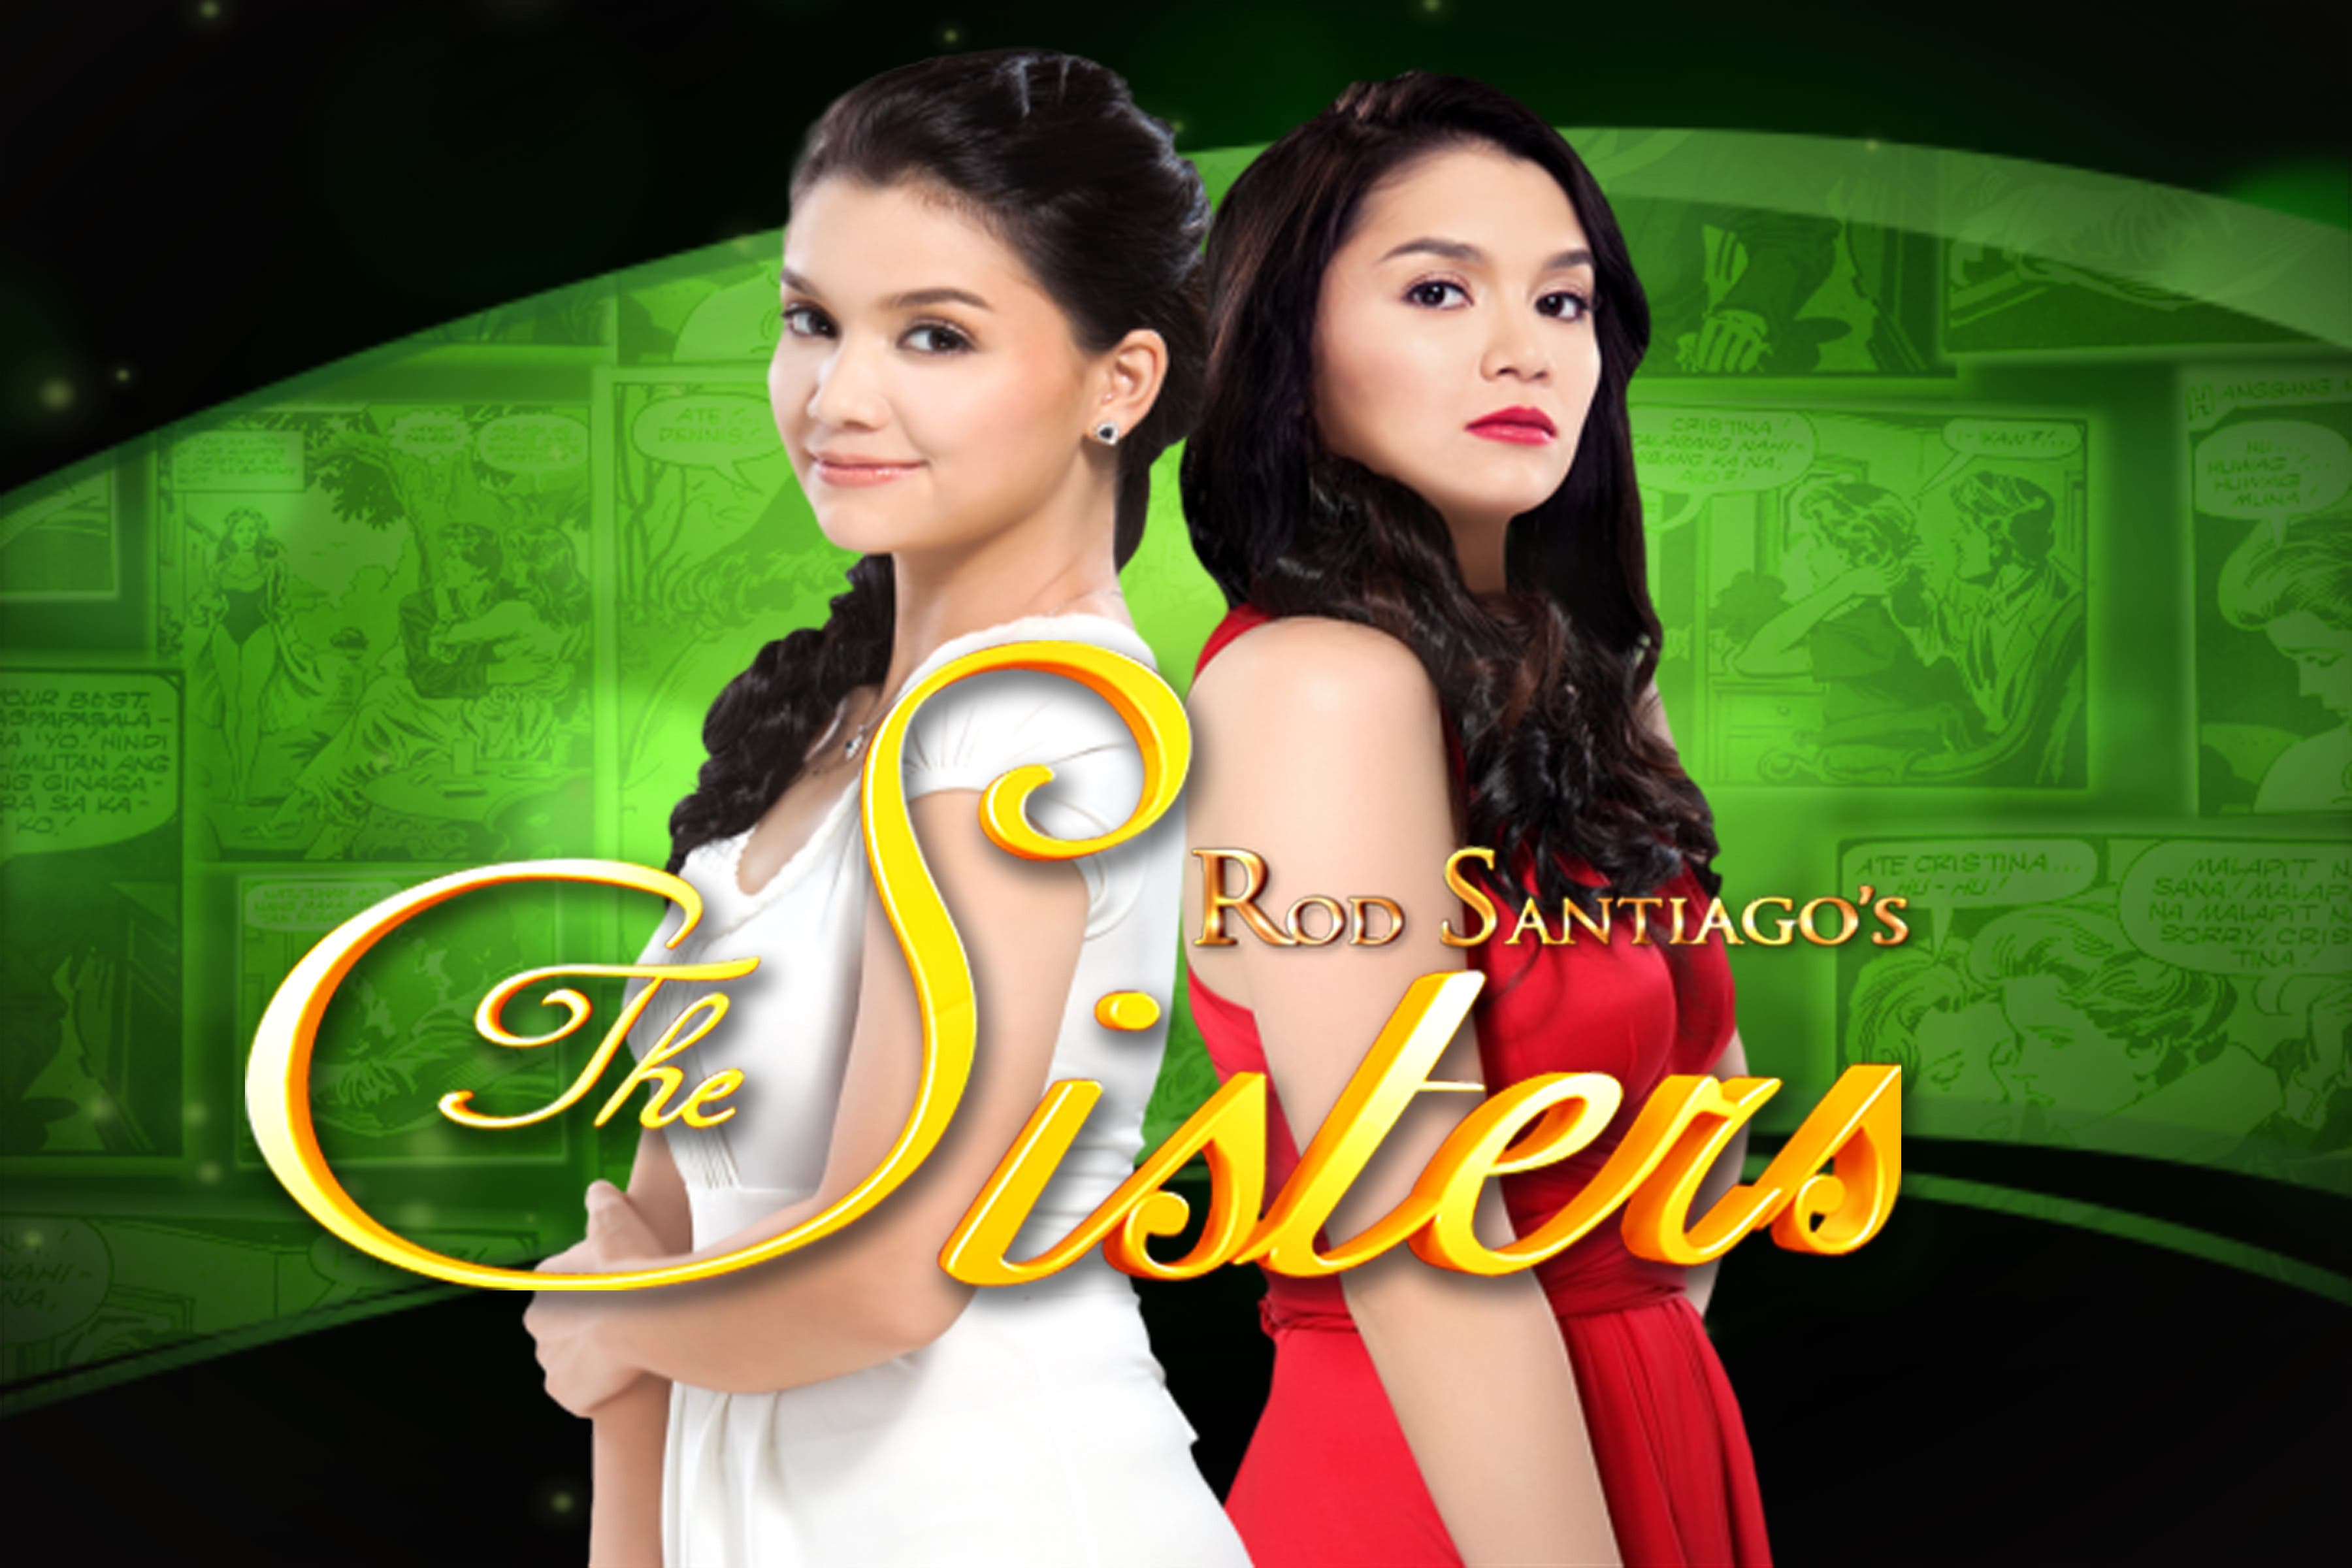 Rod Santiago's The Sisters